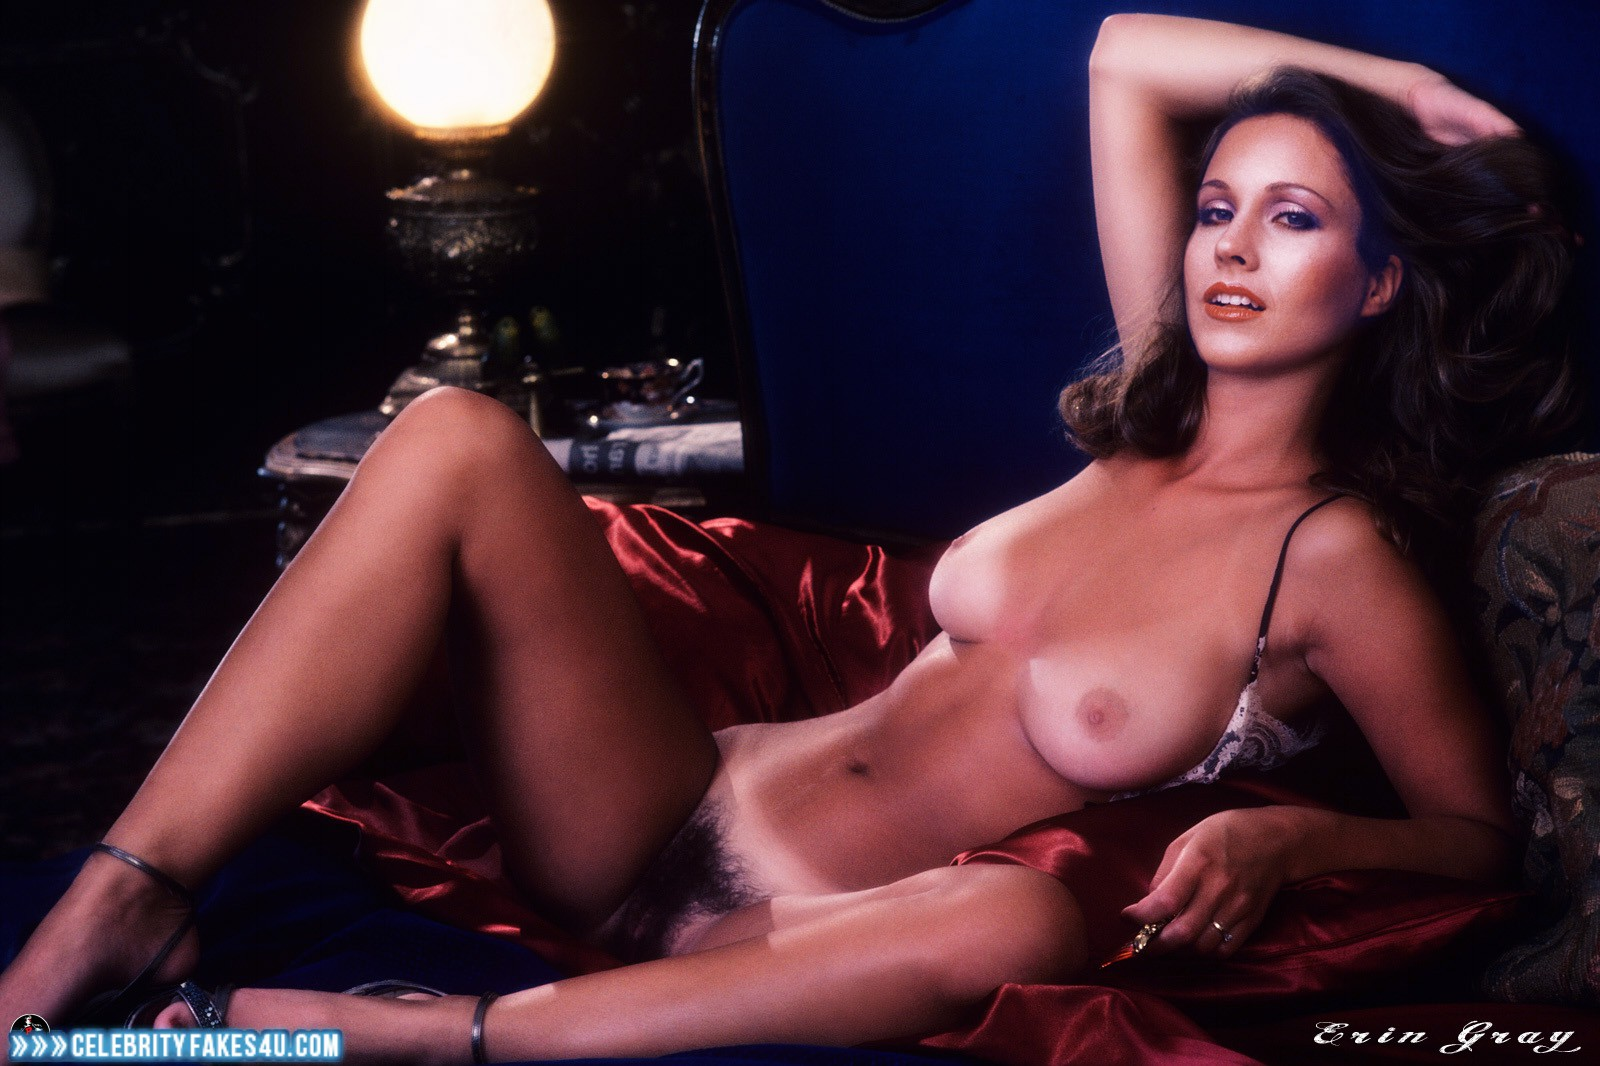 Think, that erin gray buck rogers porn you